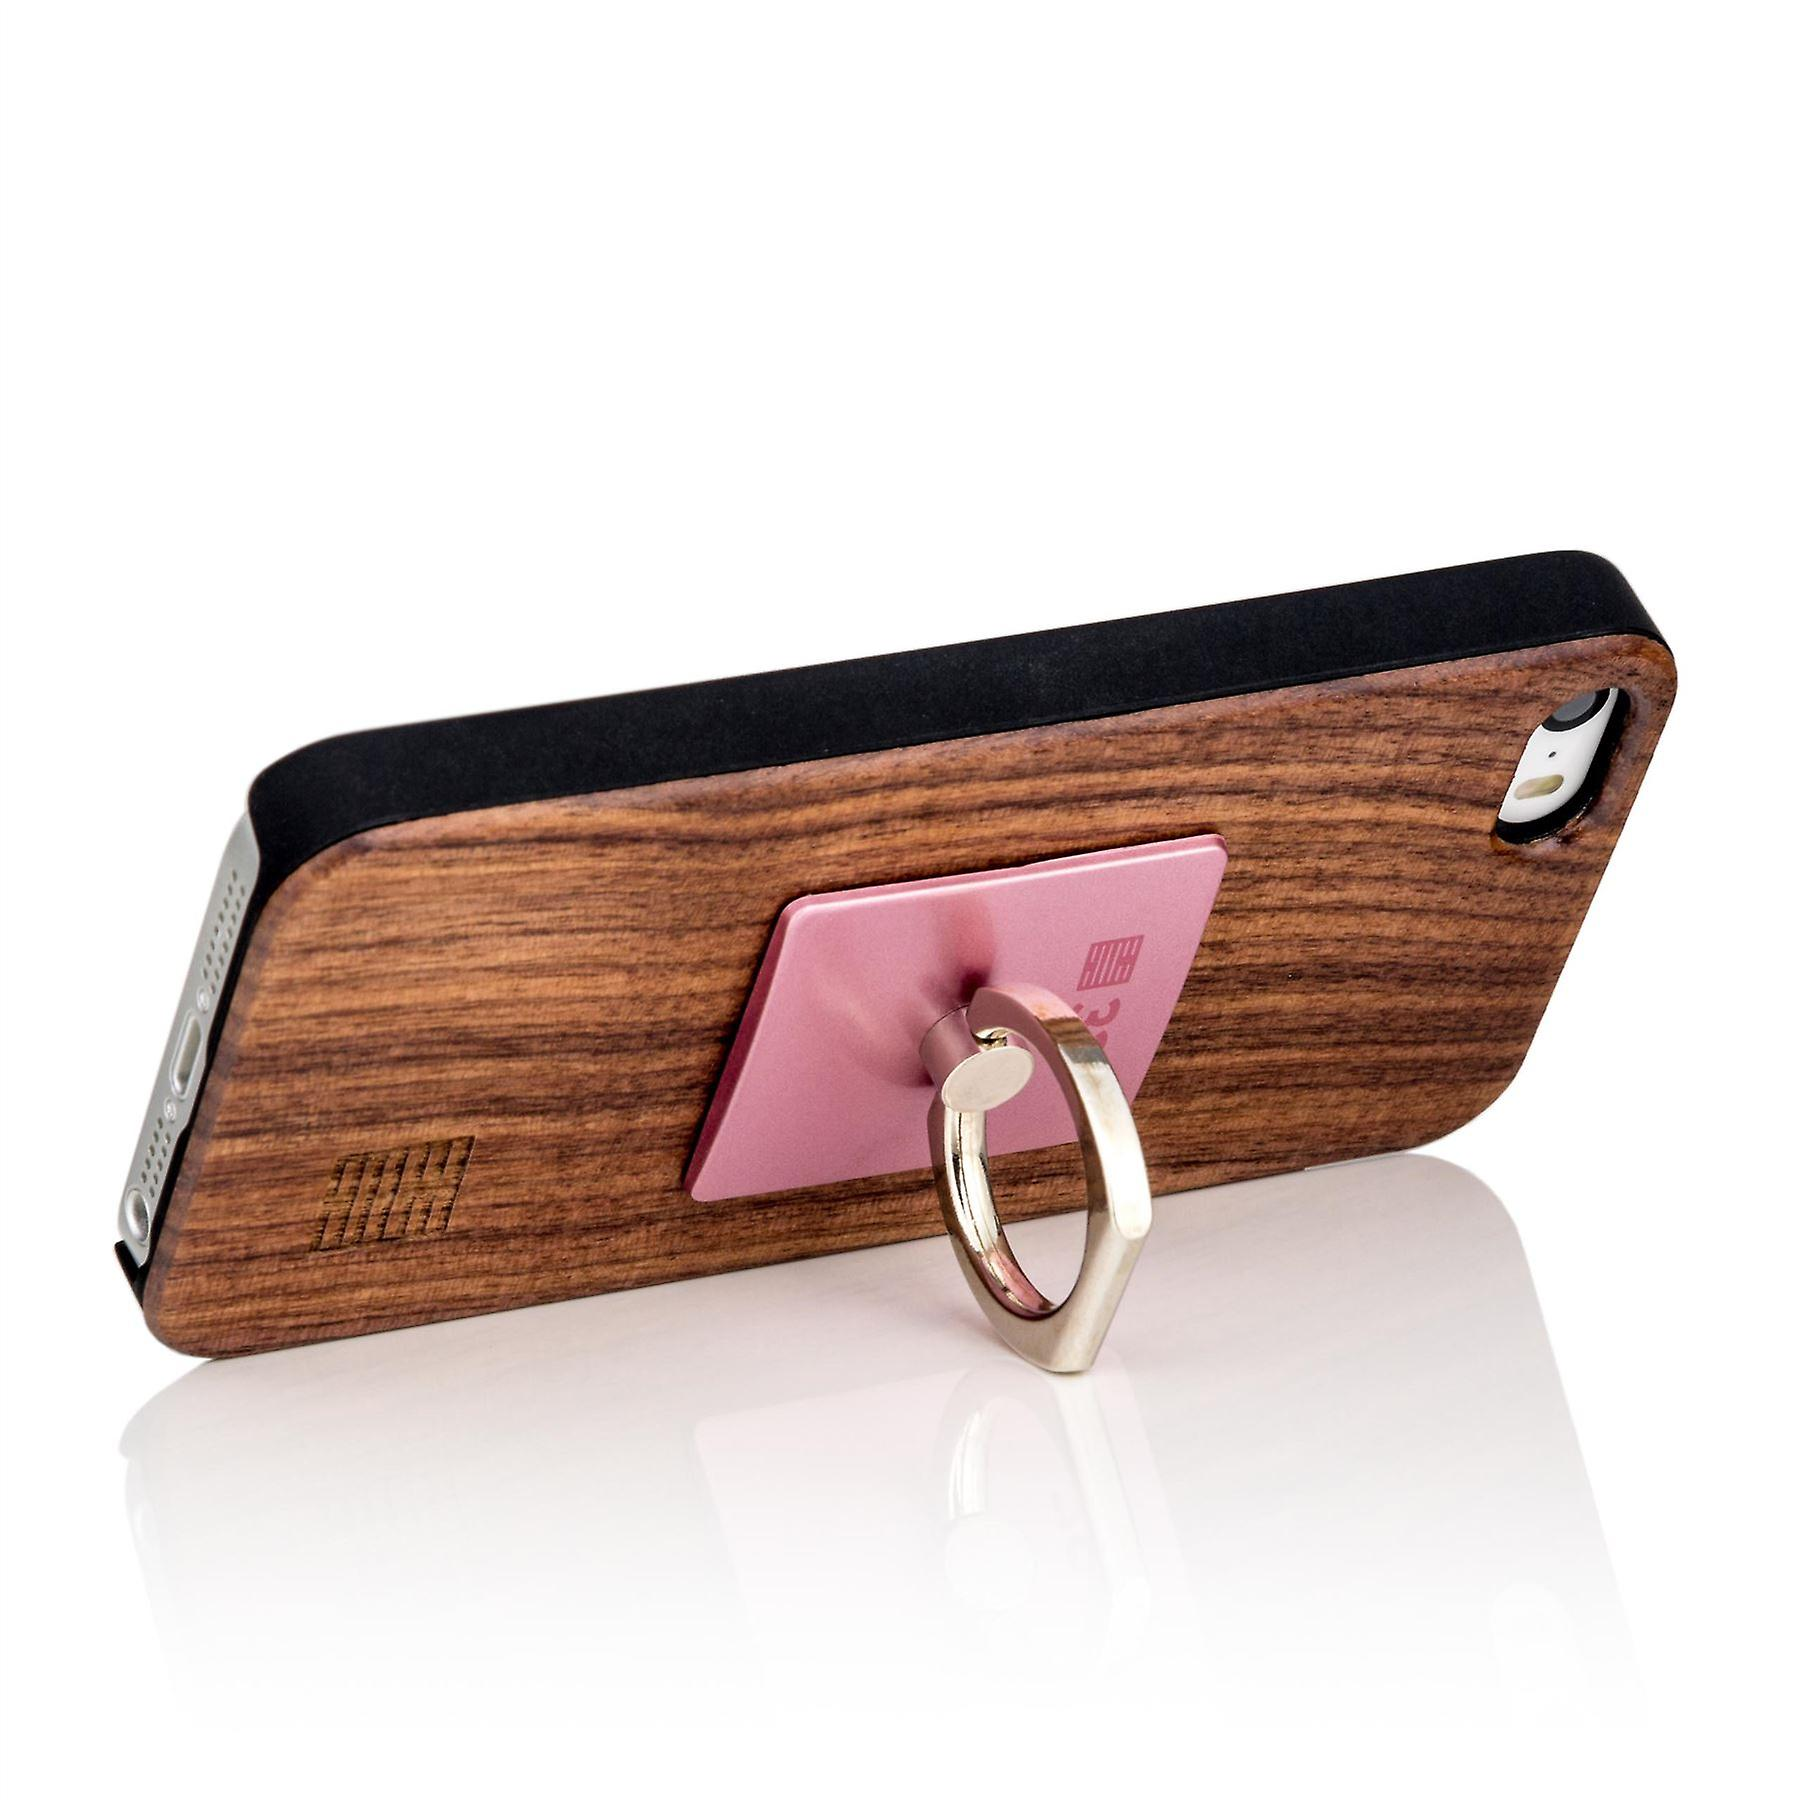 Metal ring stand phone holder - Rose Gold